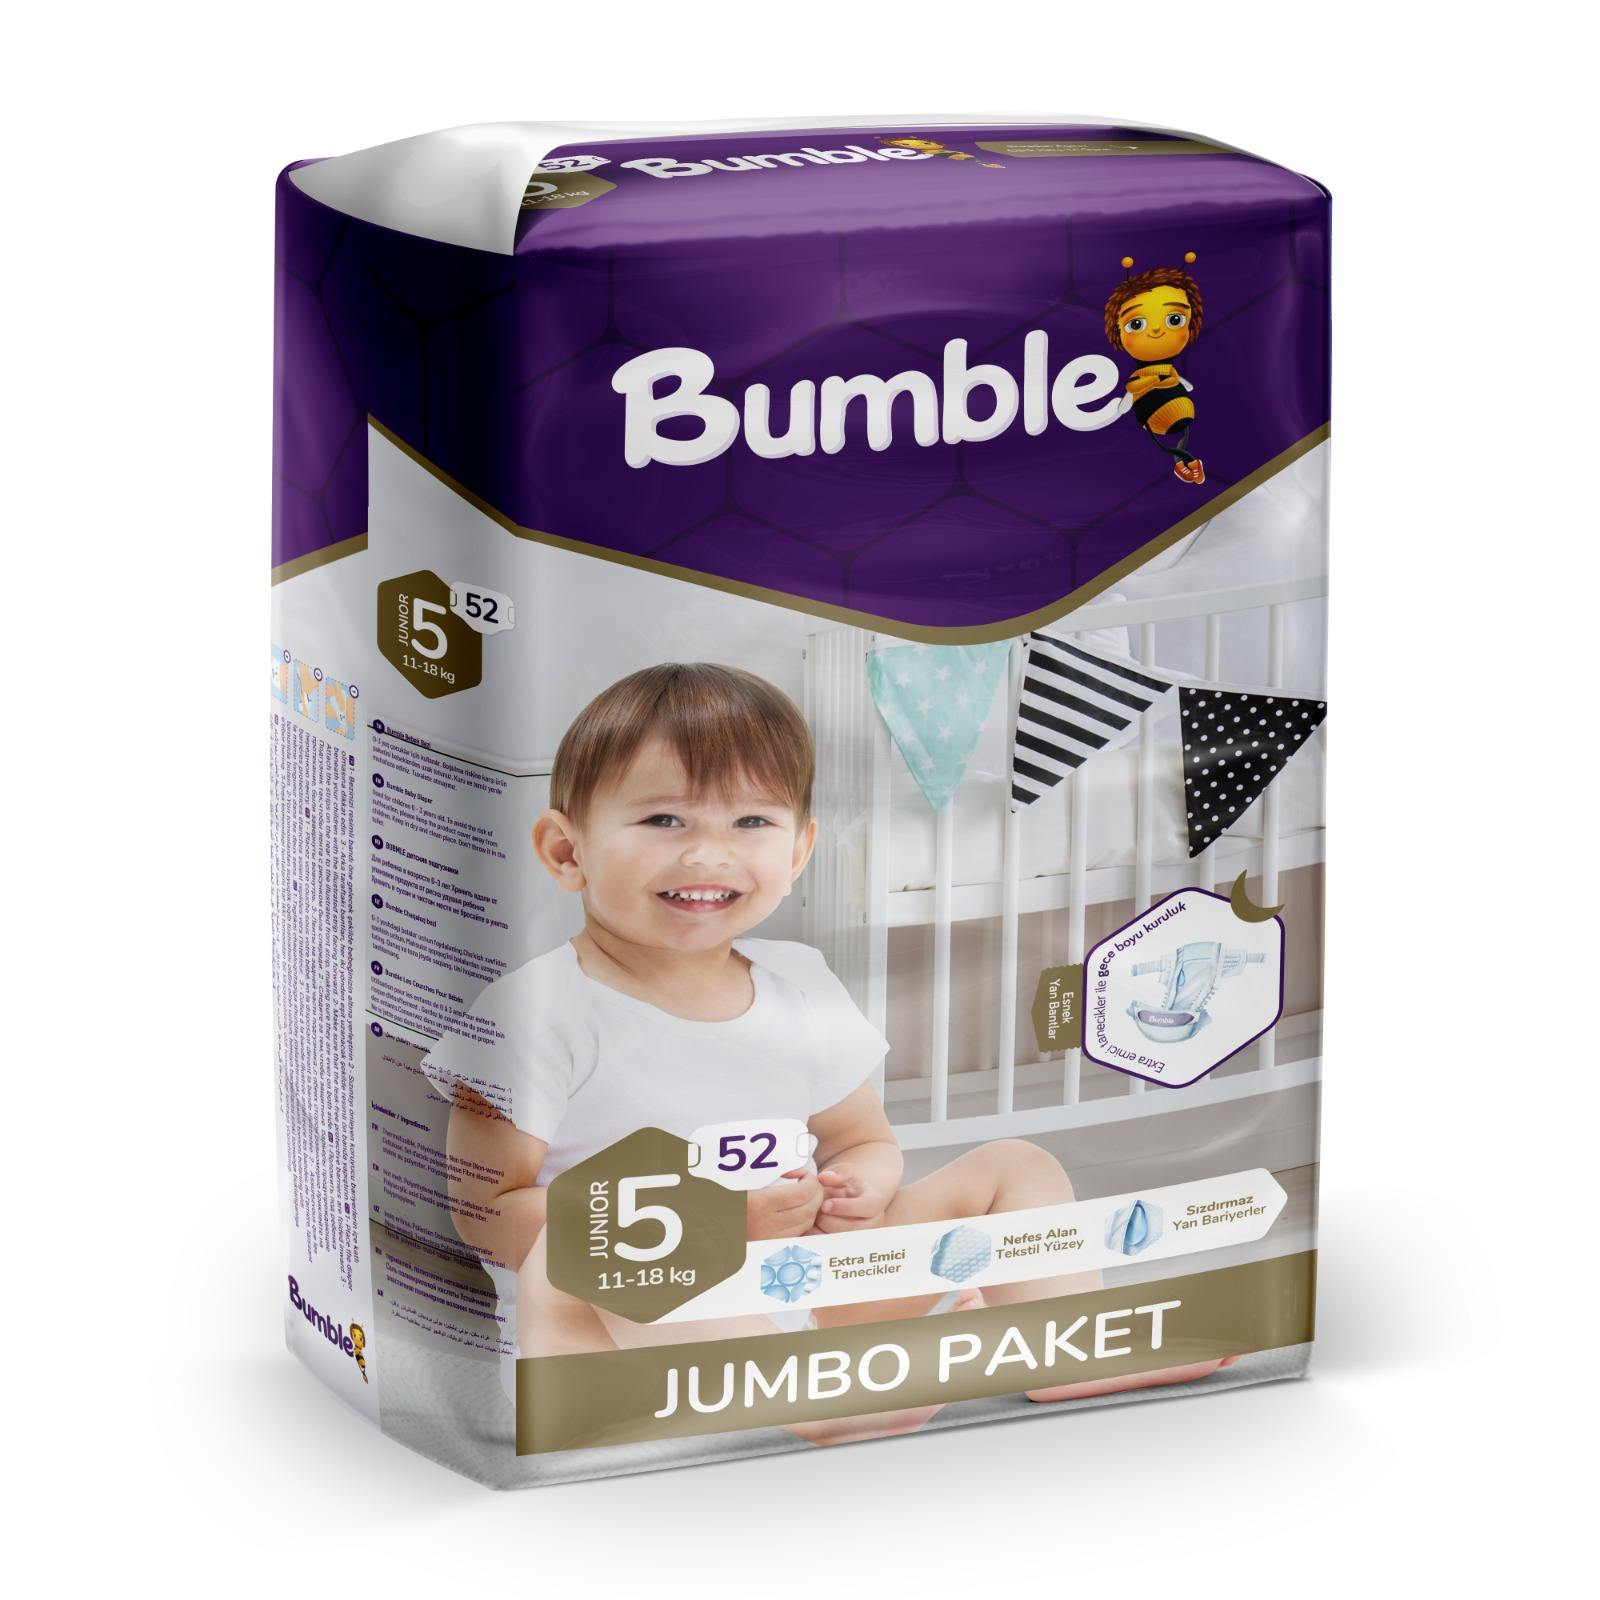 Bumble Baby Diapers Jumbo No:5 52's Disposable Baby Diaper Bumble Brand